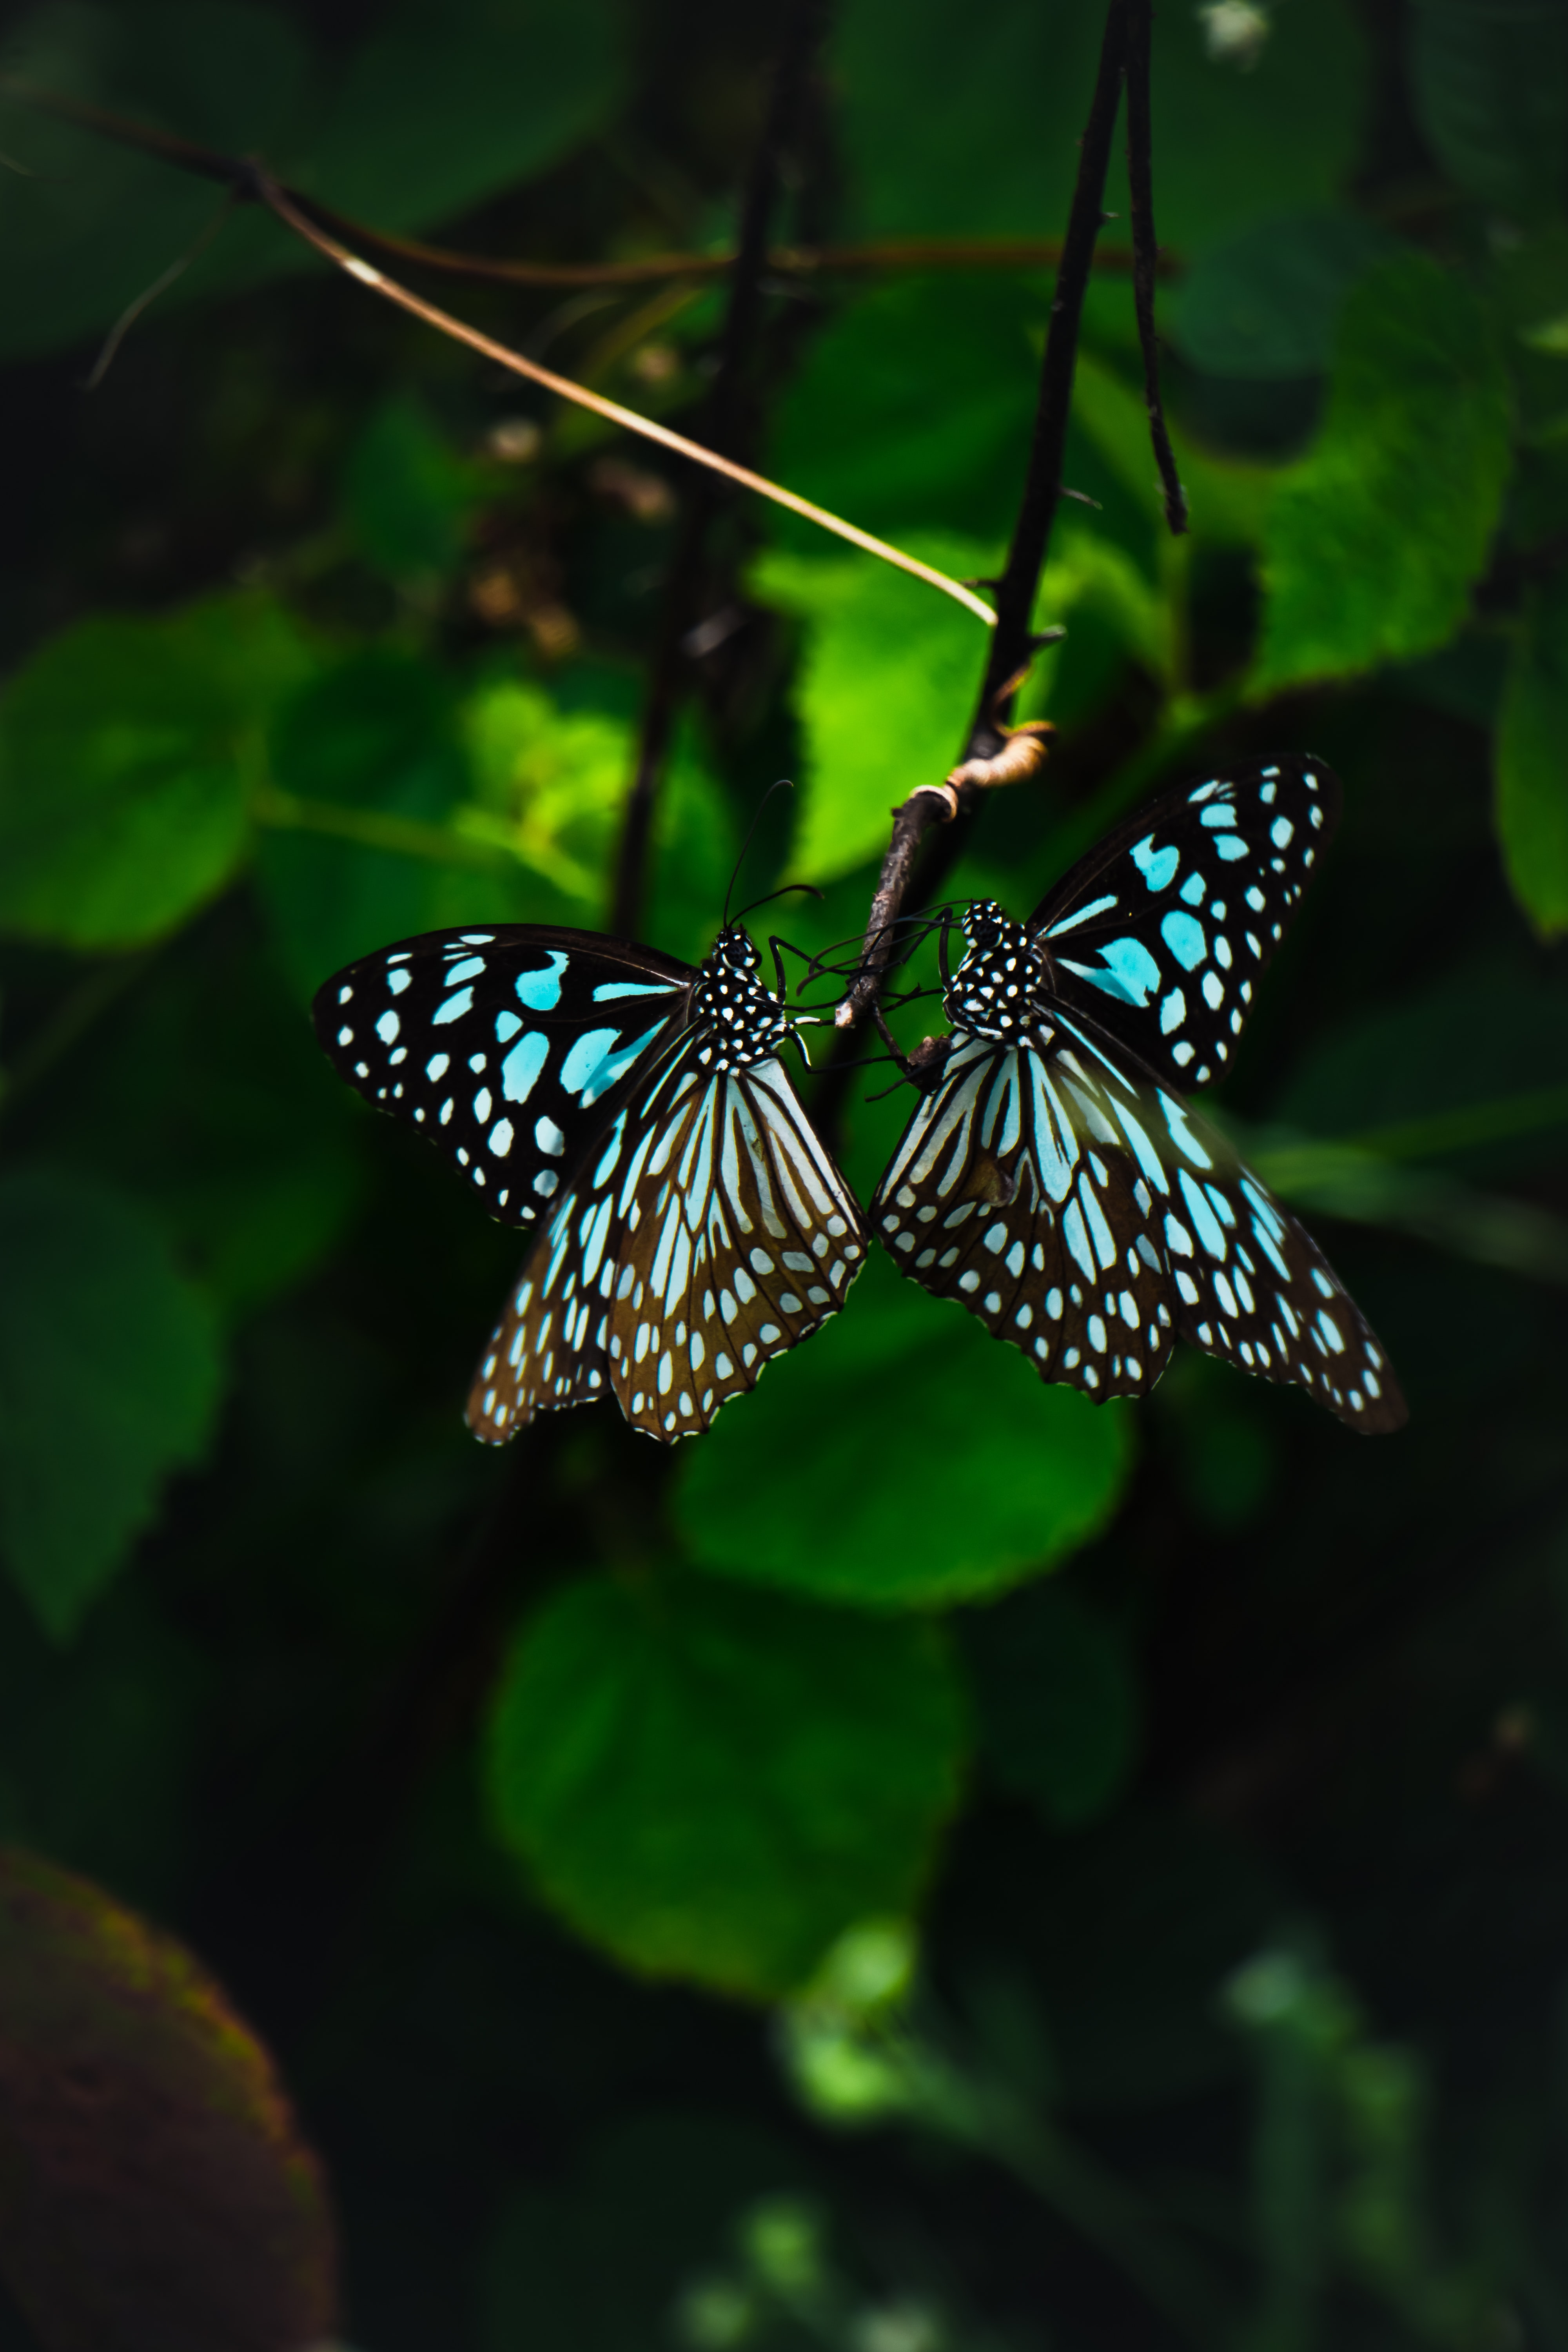 77364 download wallpaper Butterflies, Animals, Pattern, Wings, Tropical screensavers and pictures for free